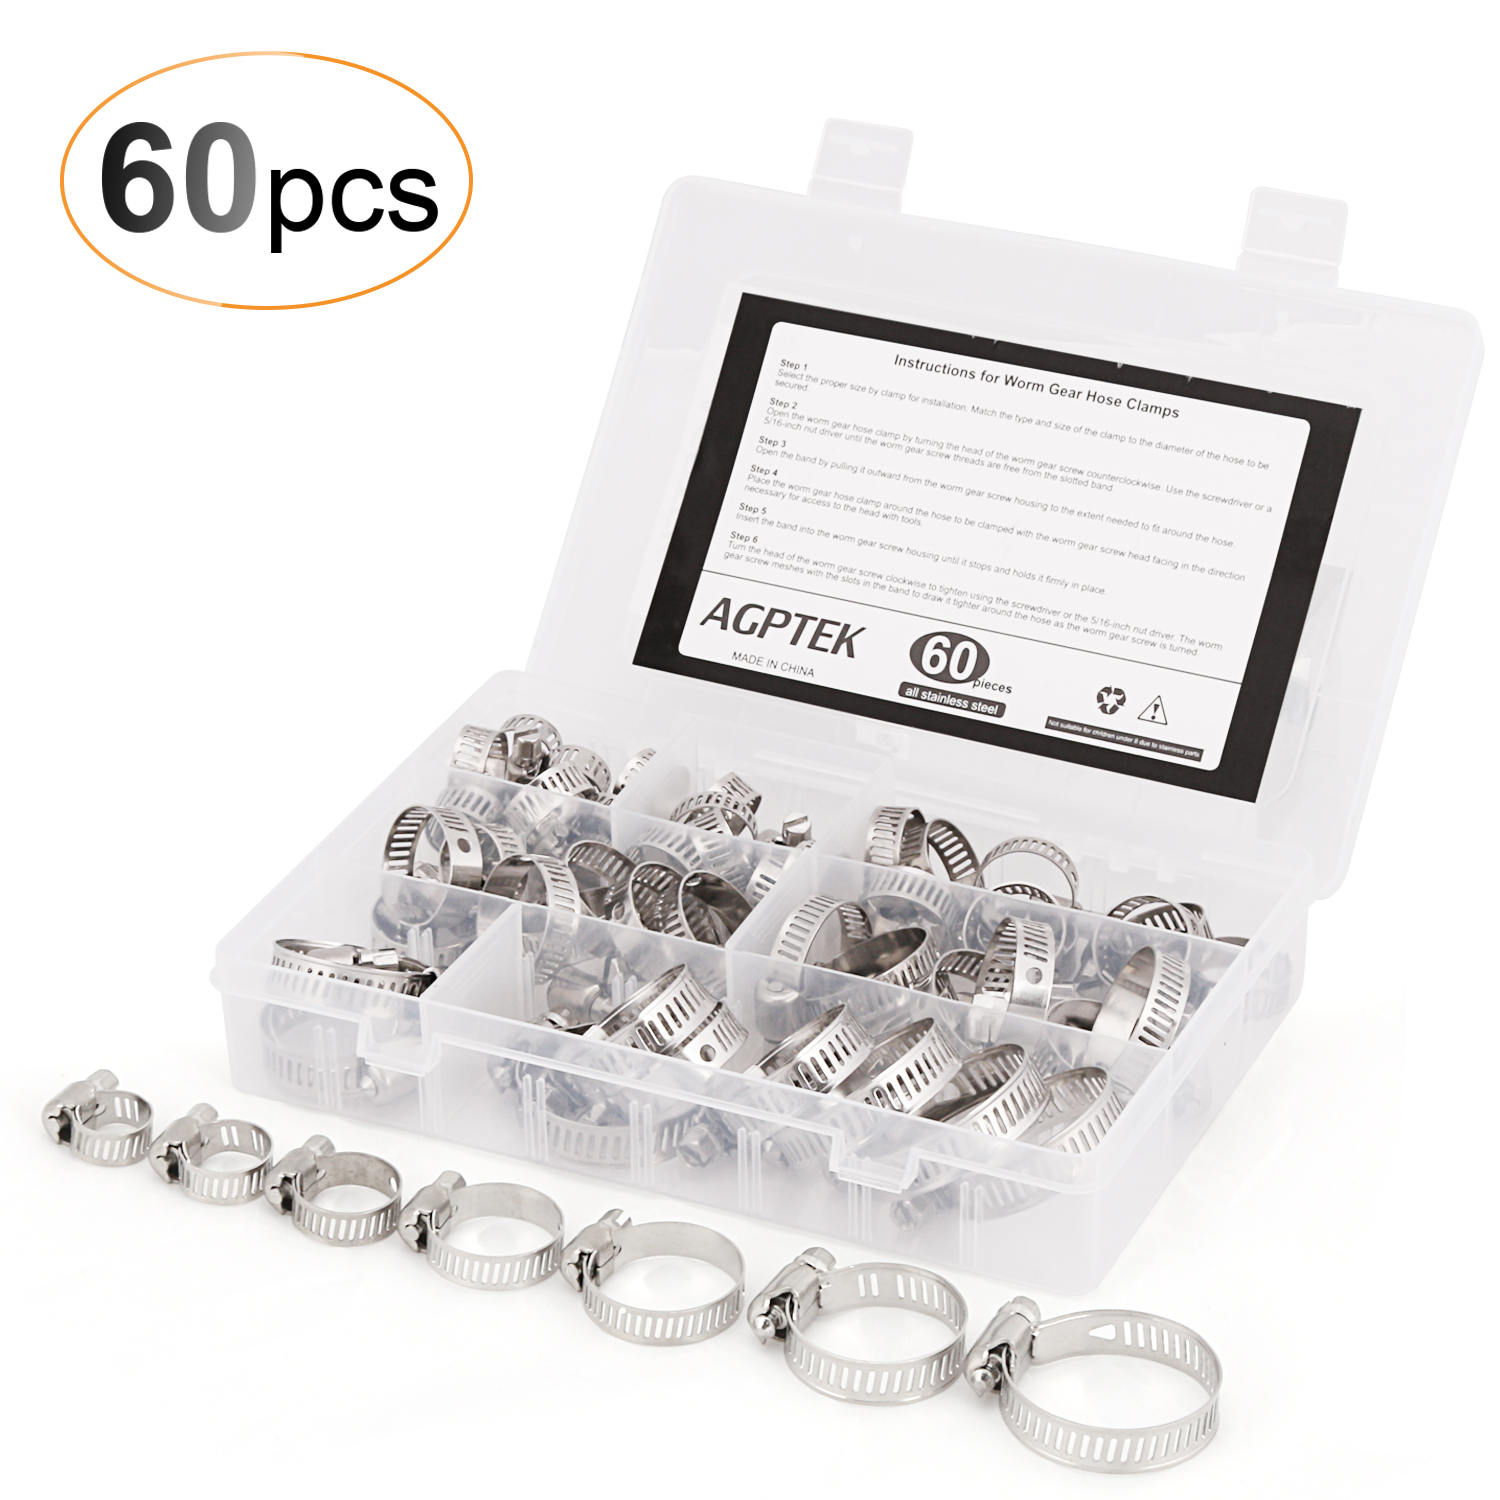 AGPTEK 60PCS Hose Clamps All Stainless Steel Worm Gear Assortment Kit (Size Range 2/9 to 1-1/2 Inches)